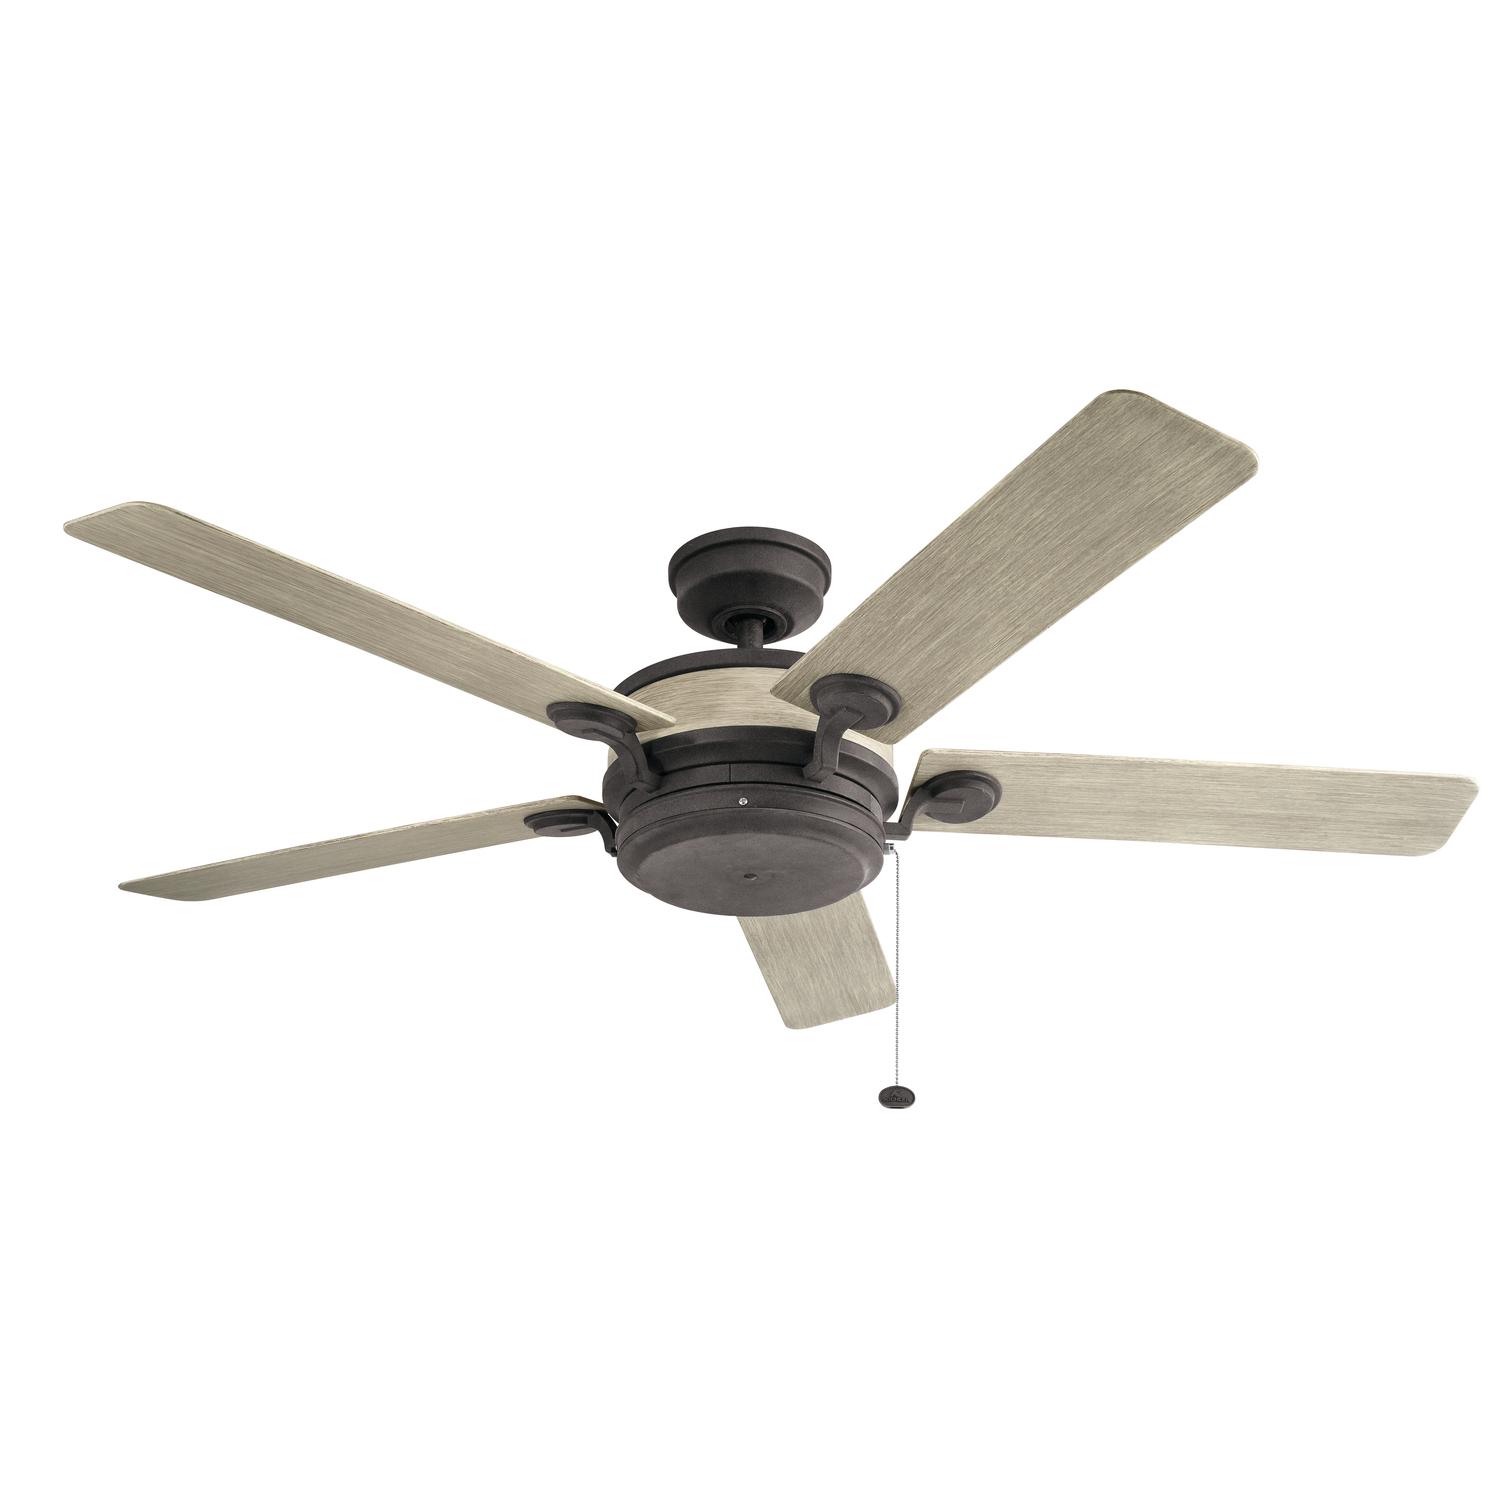 60 inchCeiling Fan from the Uma collection by Kichler 310085WZC